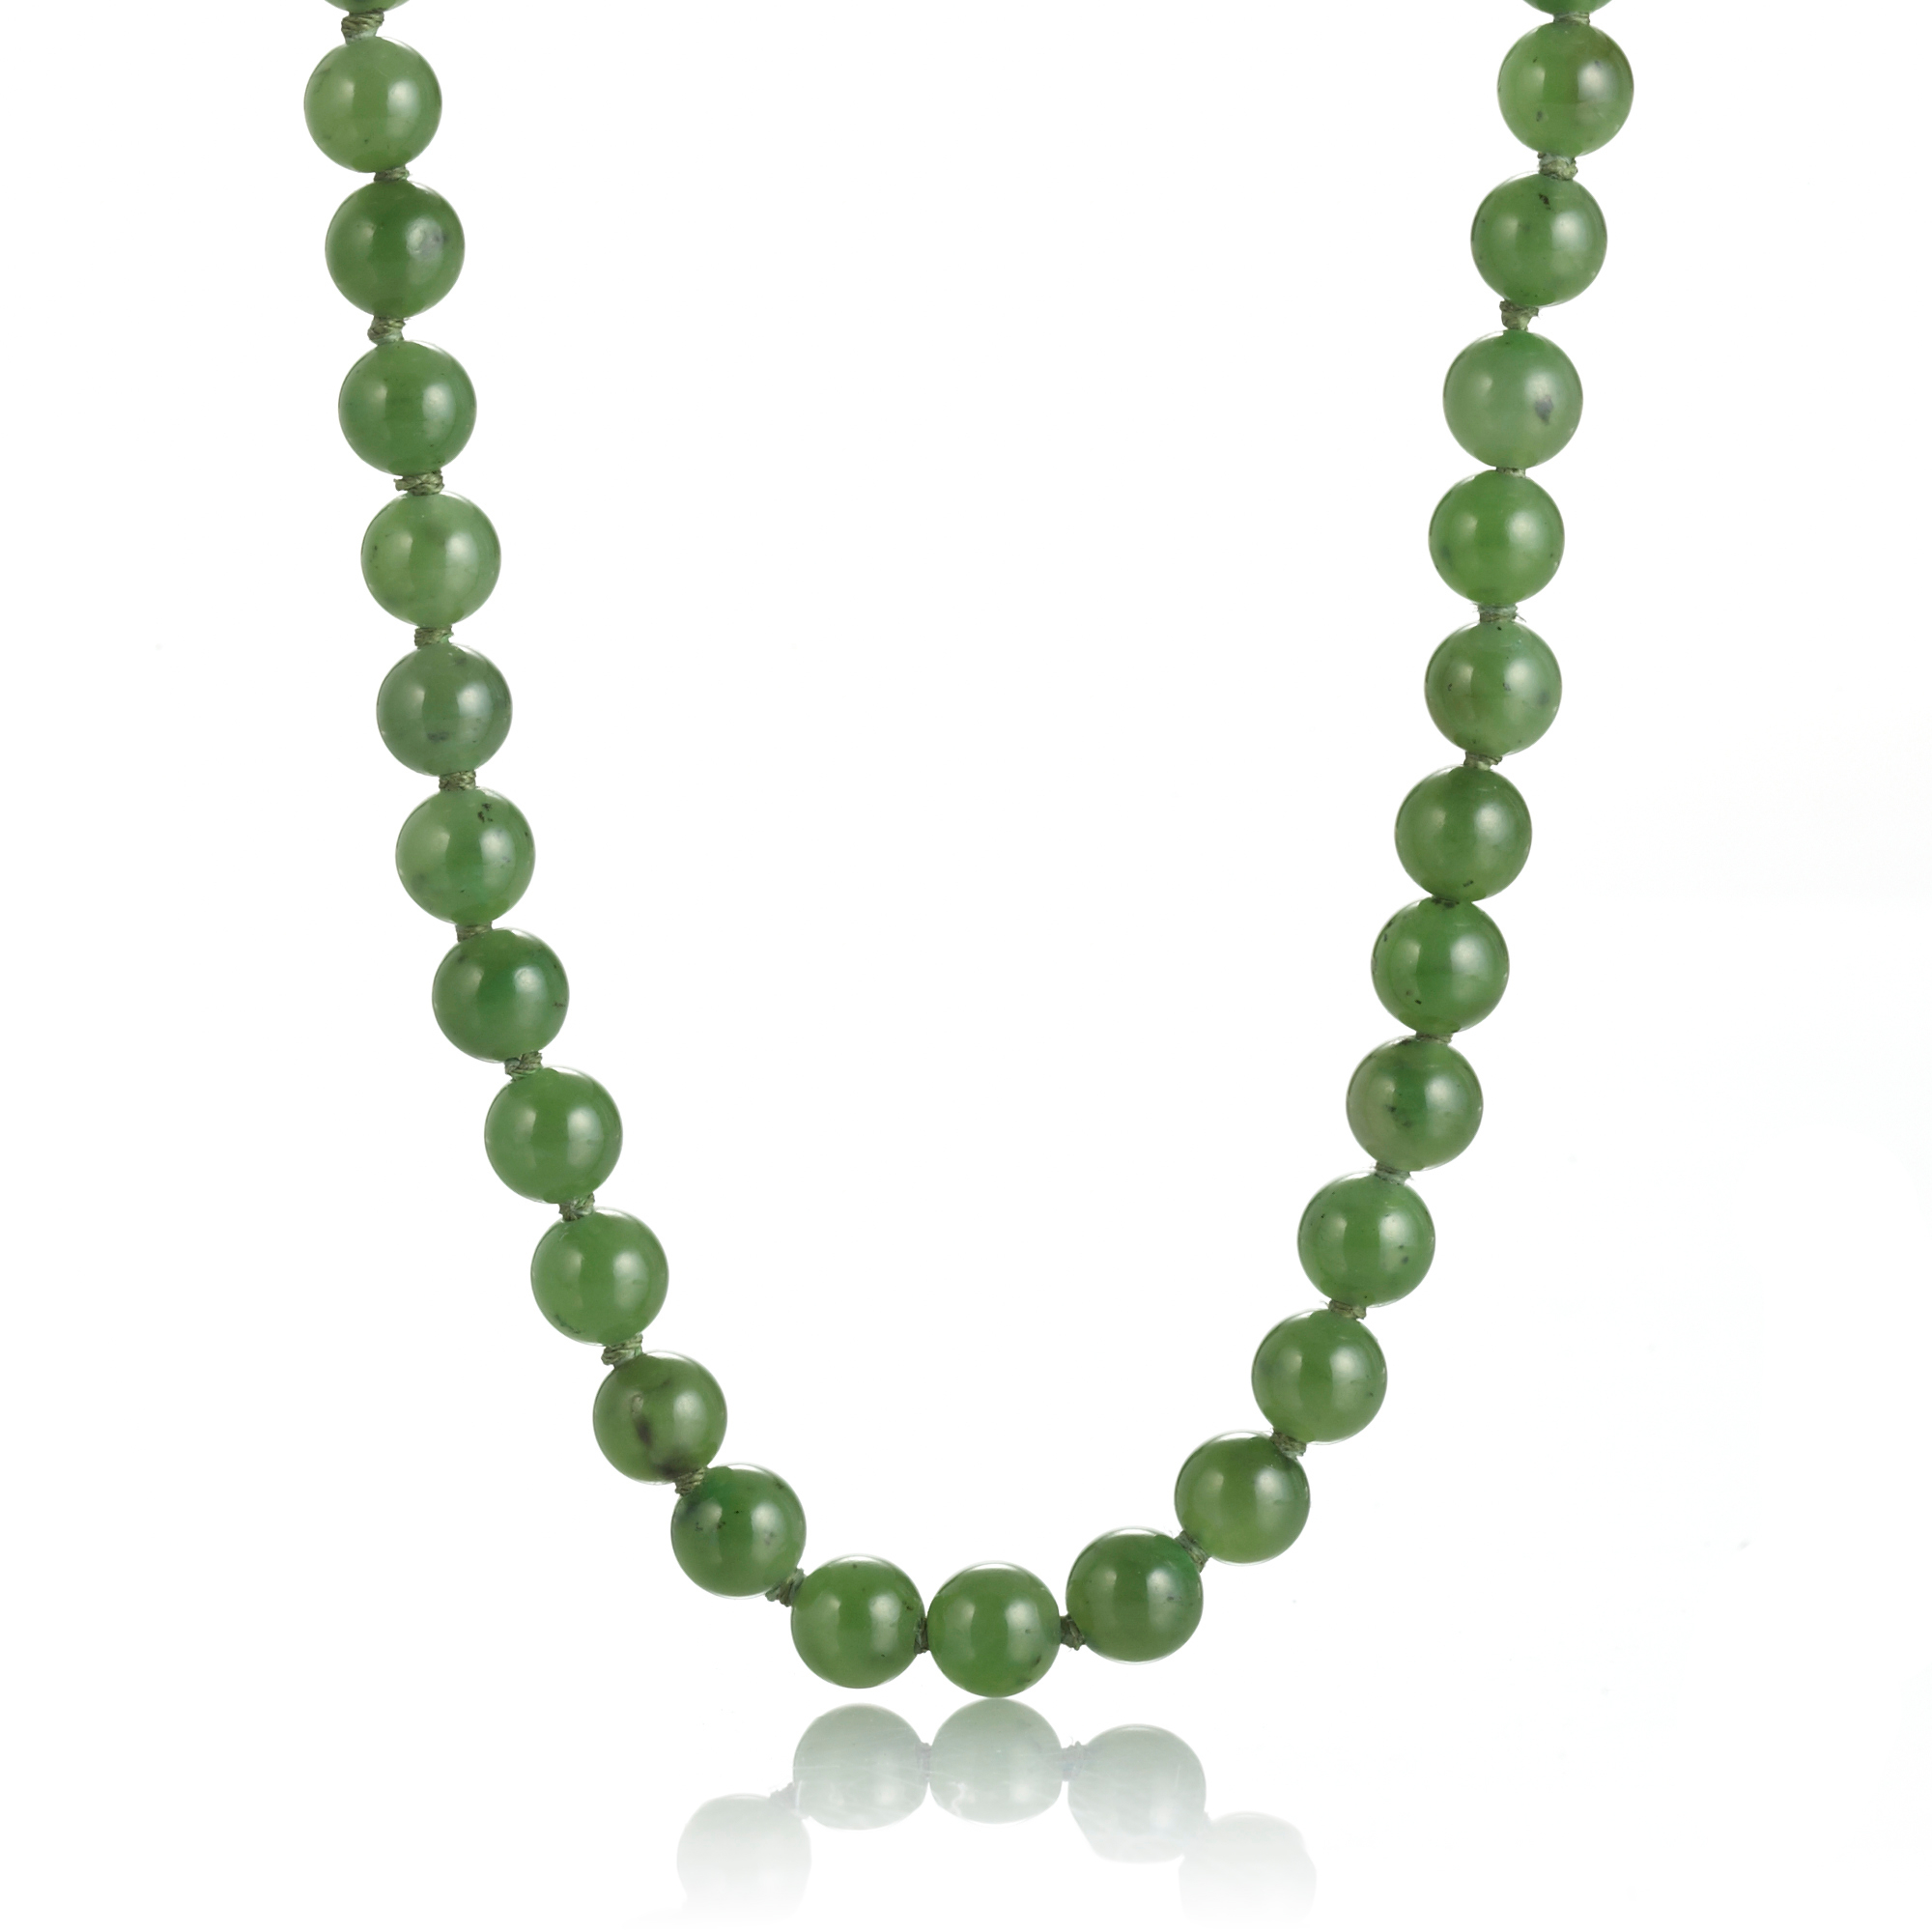 Gump's Small Green Nephrite Jade Bead Rope